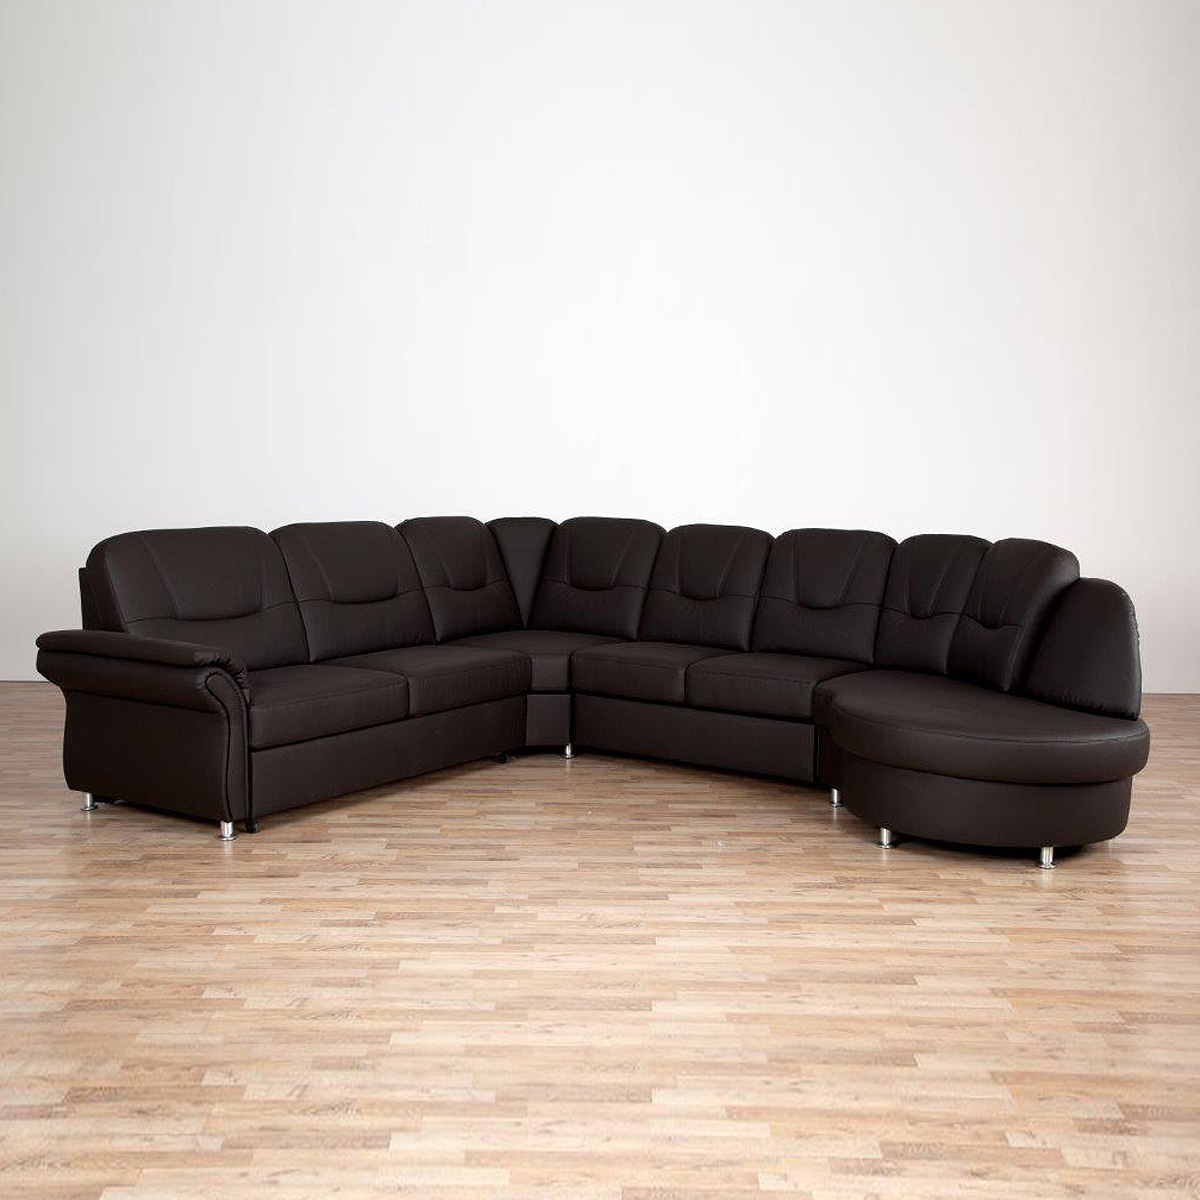 sofas mit bettfunktion und bettkasten schlafsofa mit. Black Bedroom Furniture Sets. Home Design Ideas